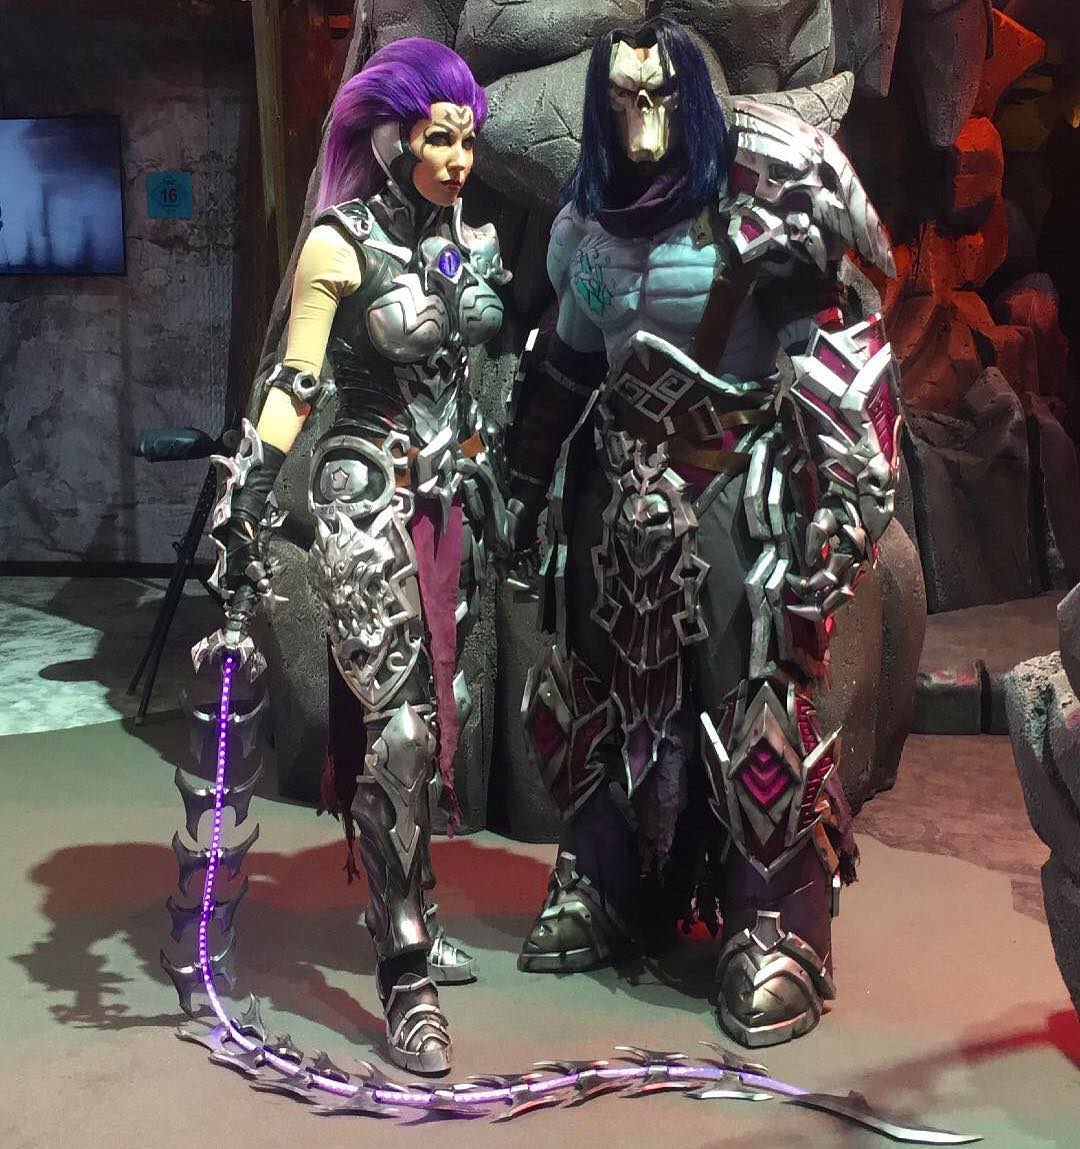 NeoPixels Cosplay Wig Amp Whip Prop Of Fury From Darksiders